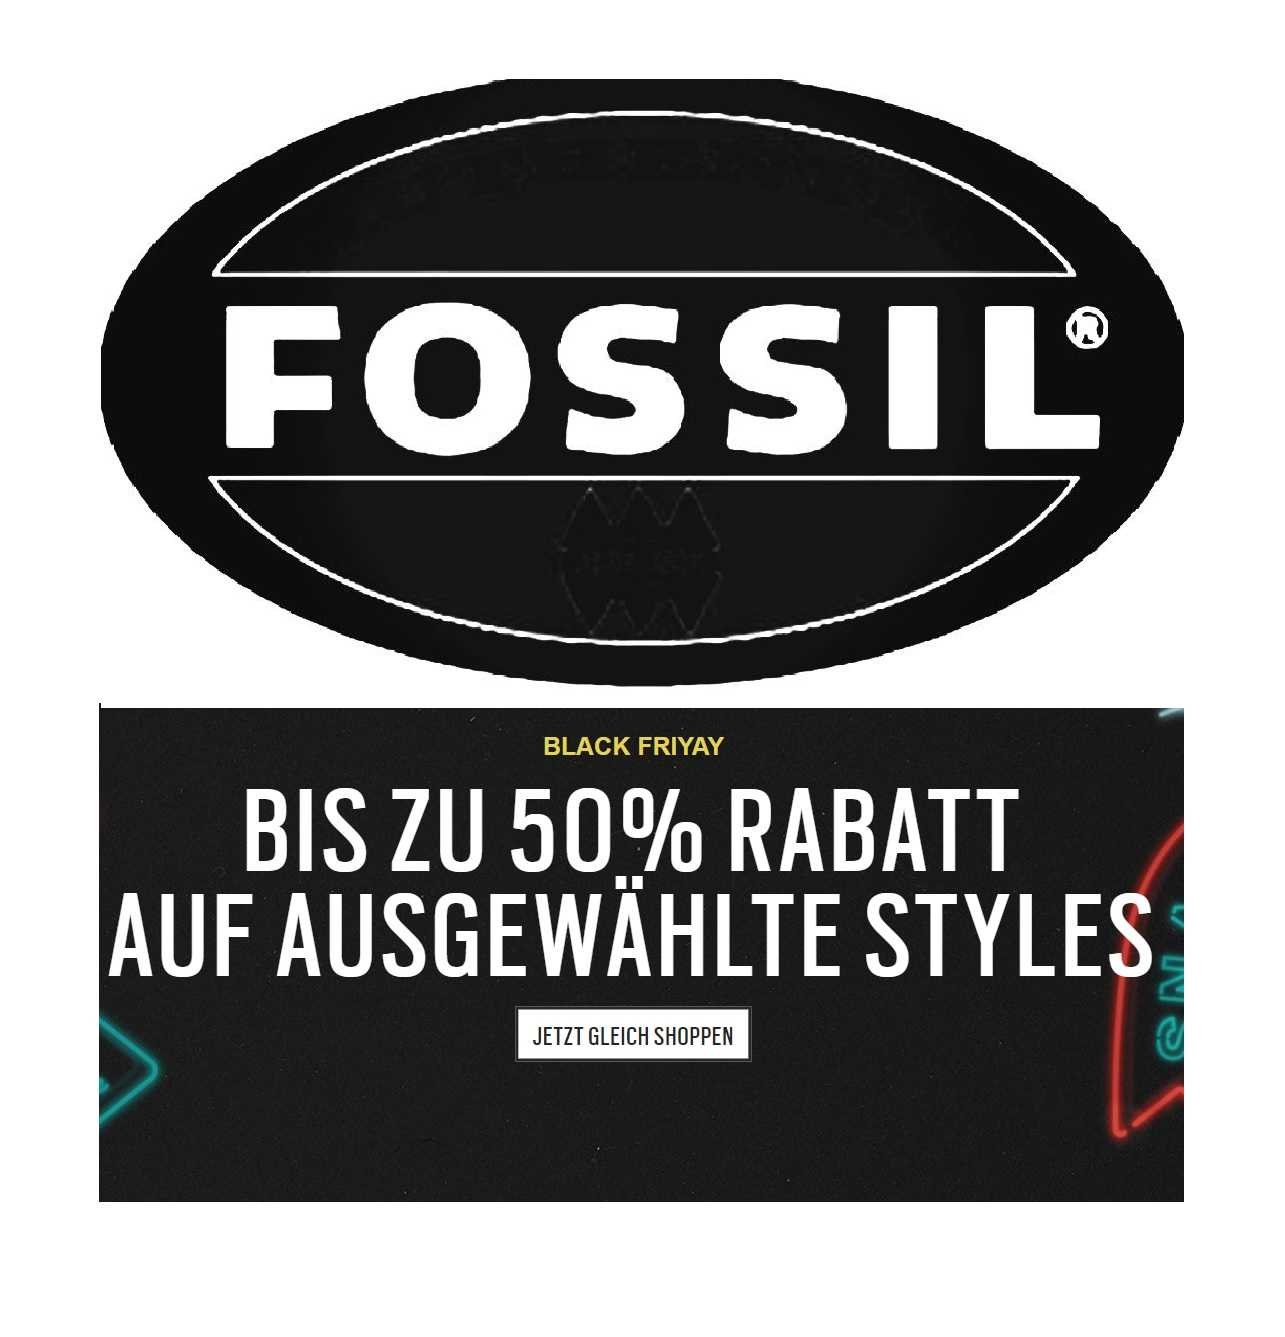 Black Friday Rabatt Fossil Black Friday Sale Mit Bis Zu 50 Rabatt Mytopdeals